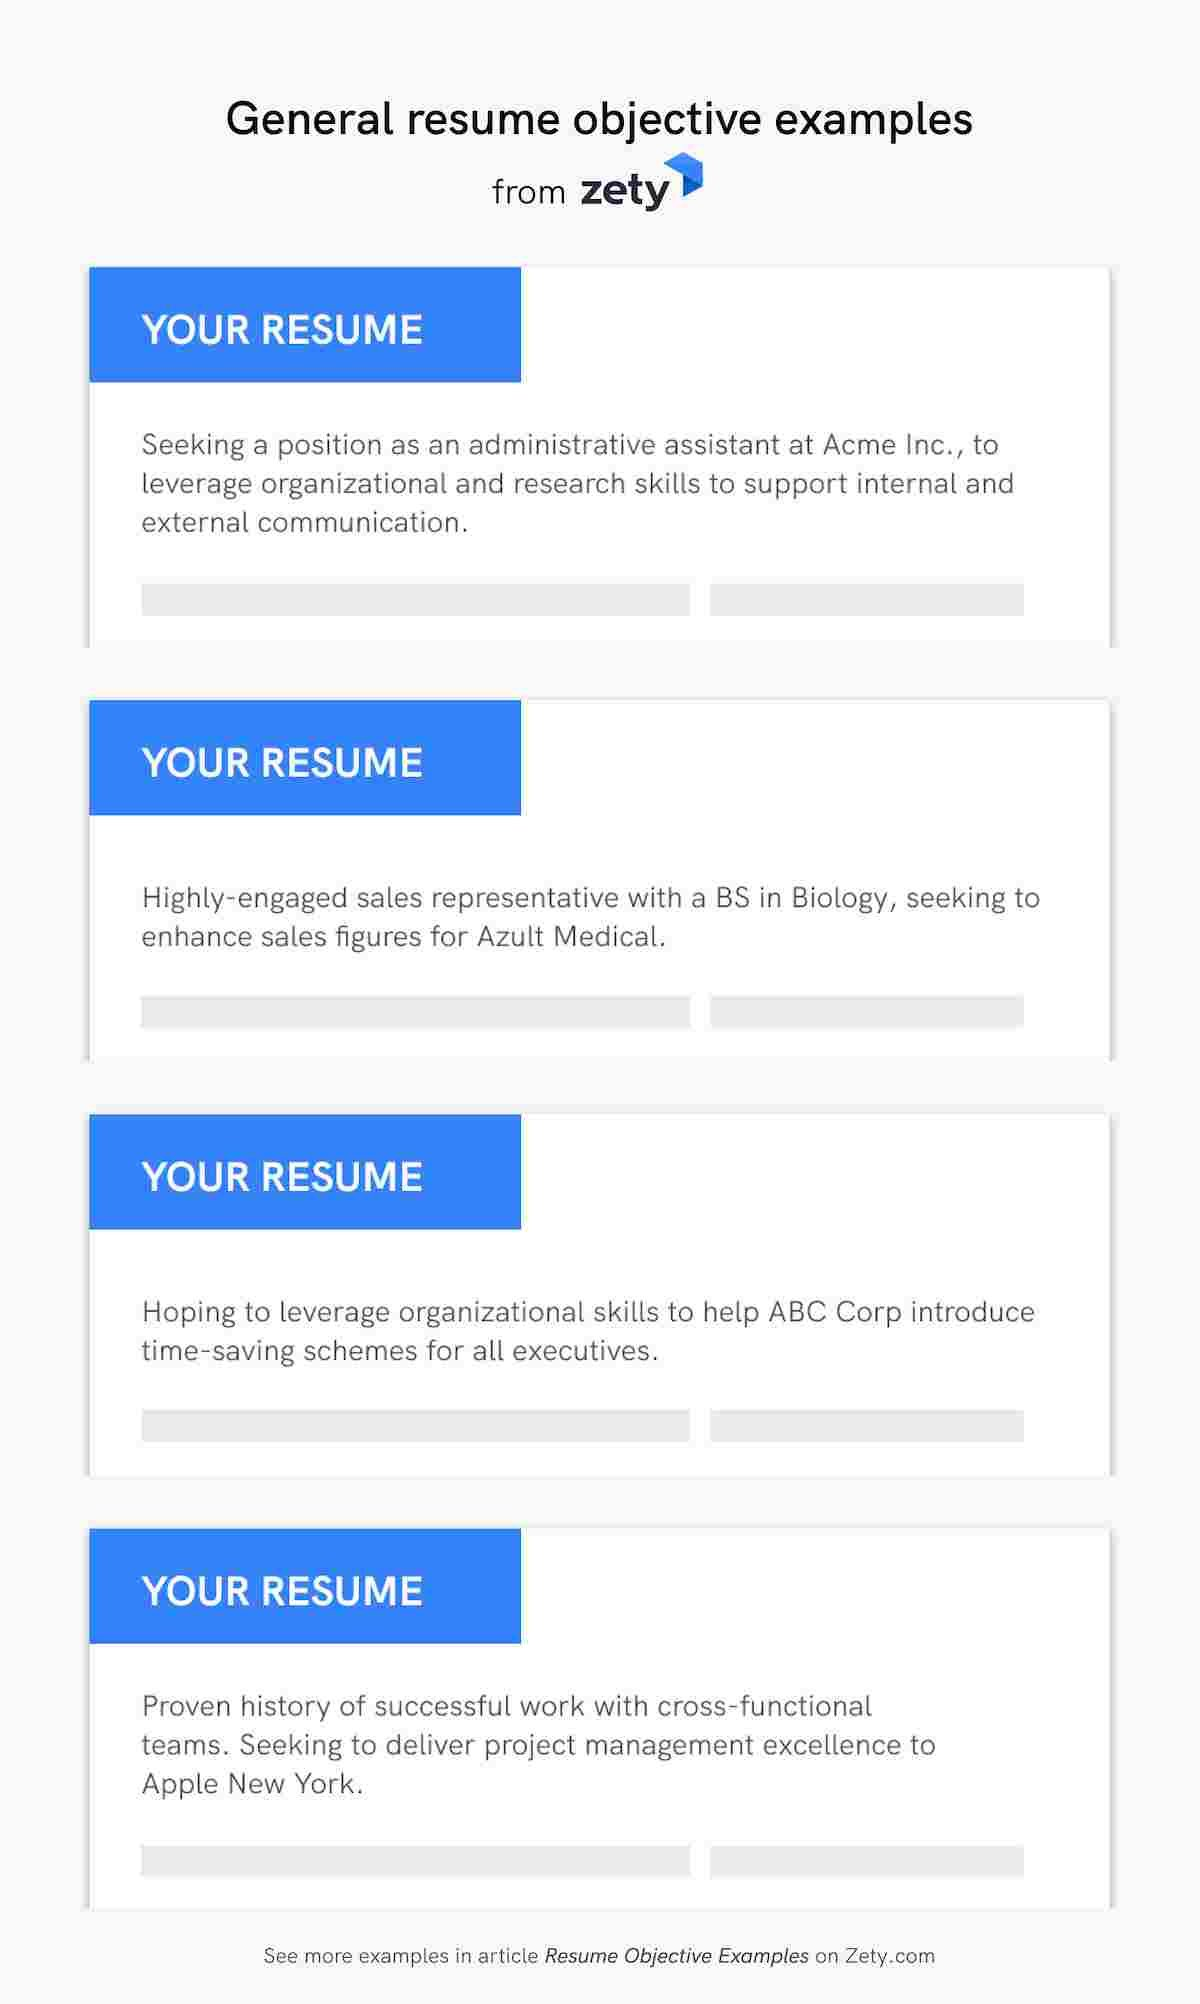 resume objective examples career objectives for all jobs communication general good Resume Communication Resume Objective Examples